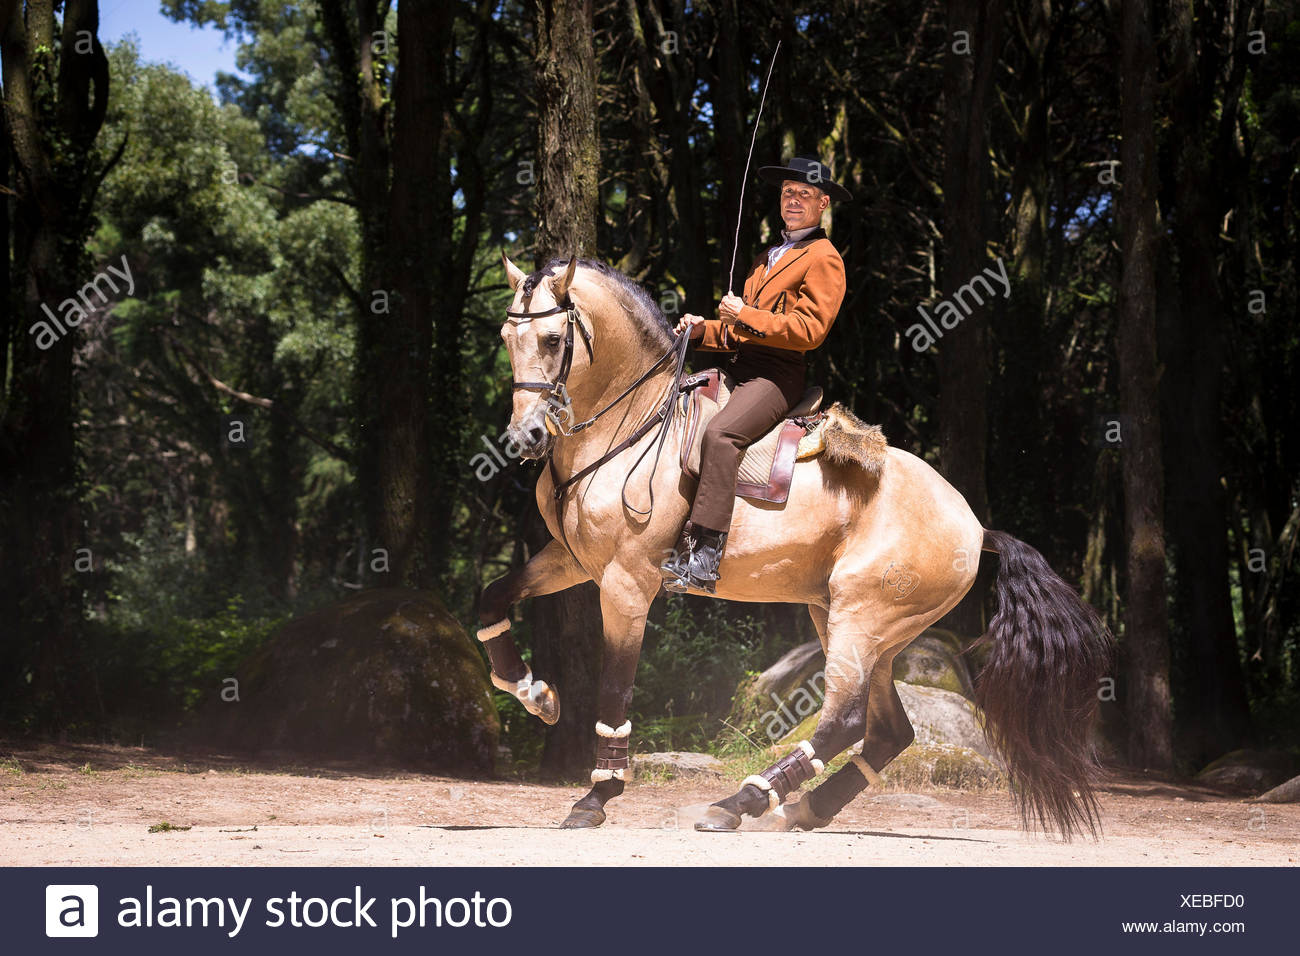 Lusitano. Dun stallion with rider performing a pirouette. Portugal - Stock Image